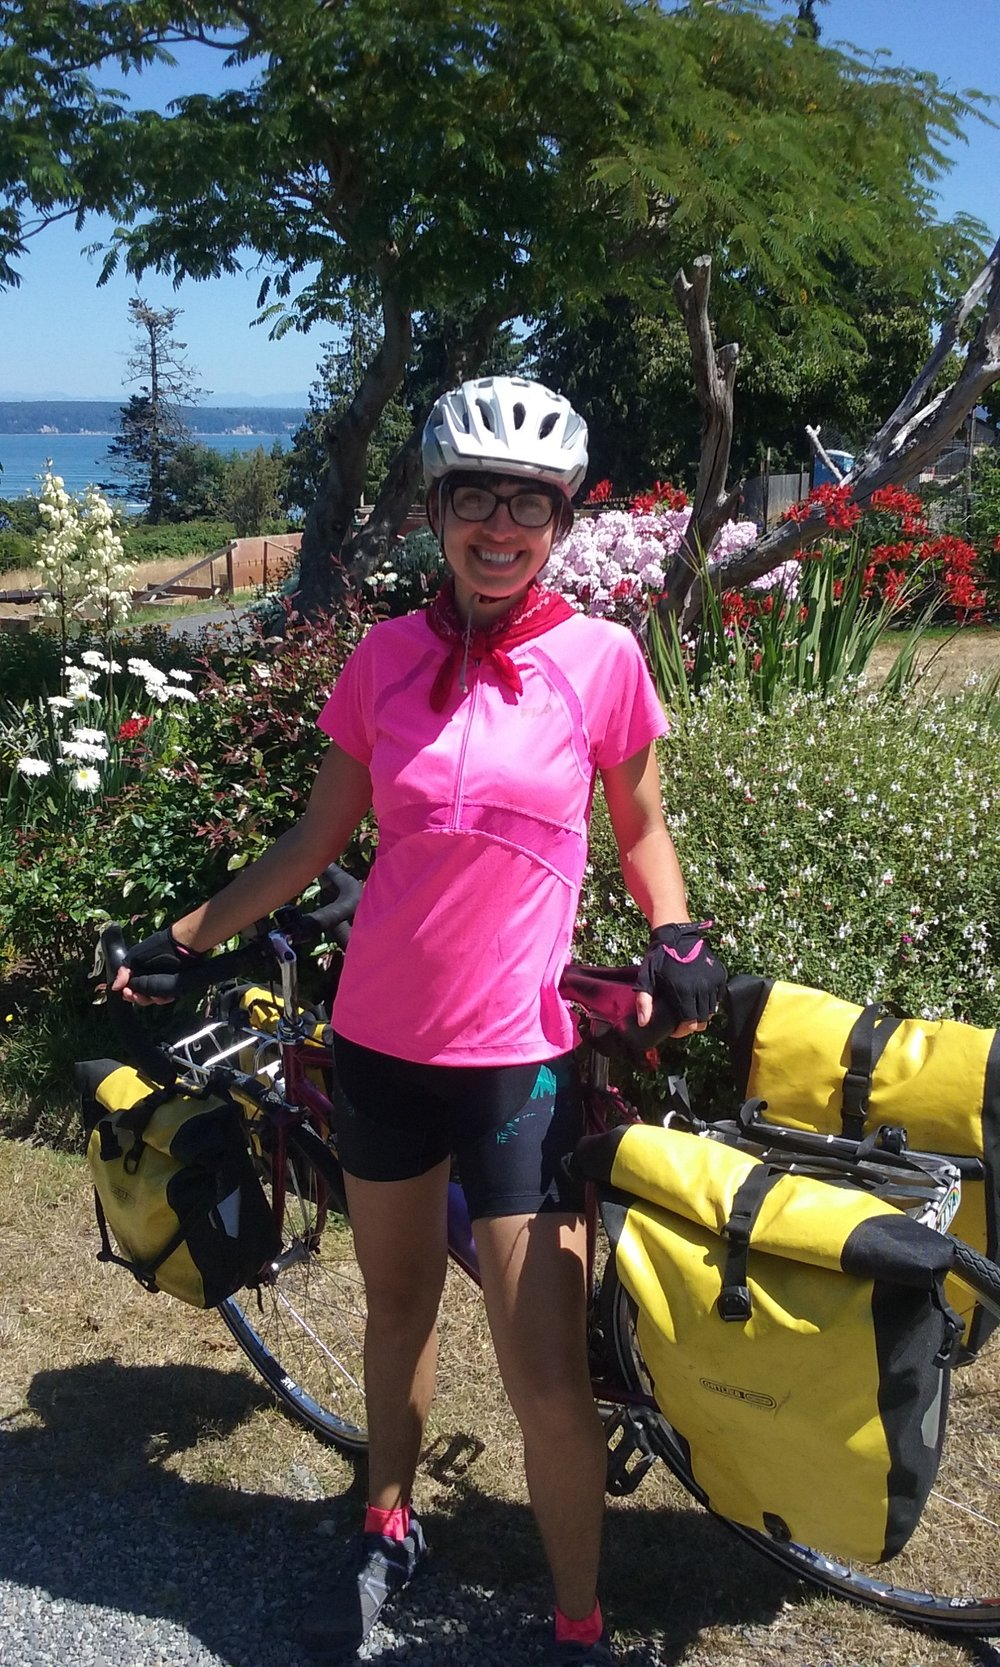 It was 25 miles from my front door to the Airbnb in Port Townsend, WA... which felt long and painful, but nothing compared to past bike tours. -